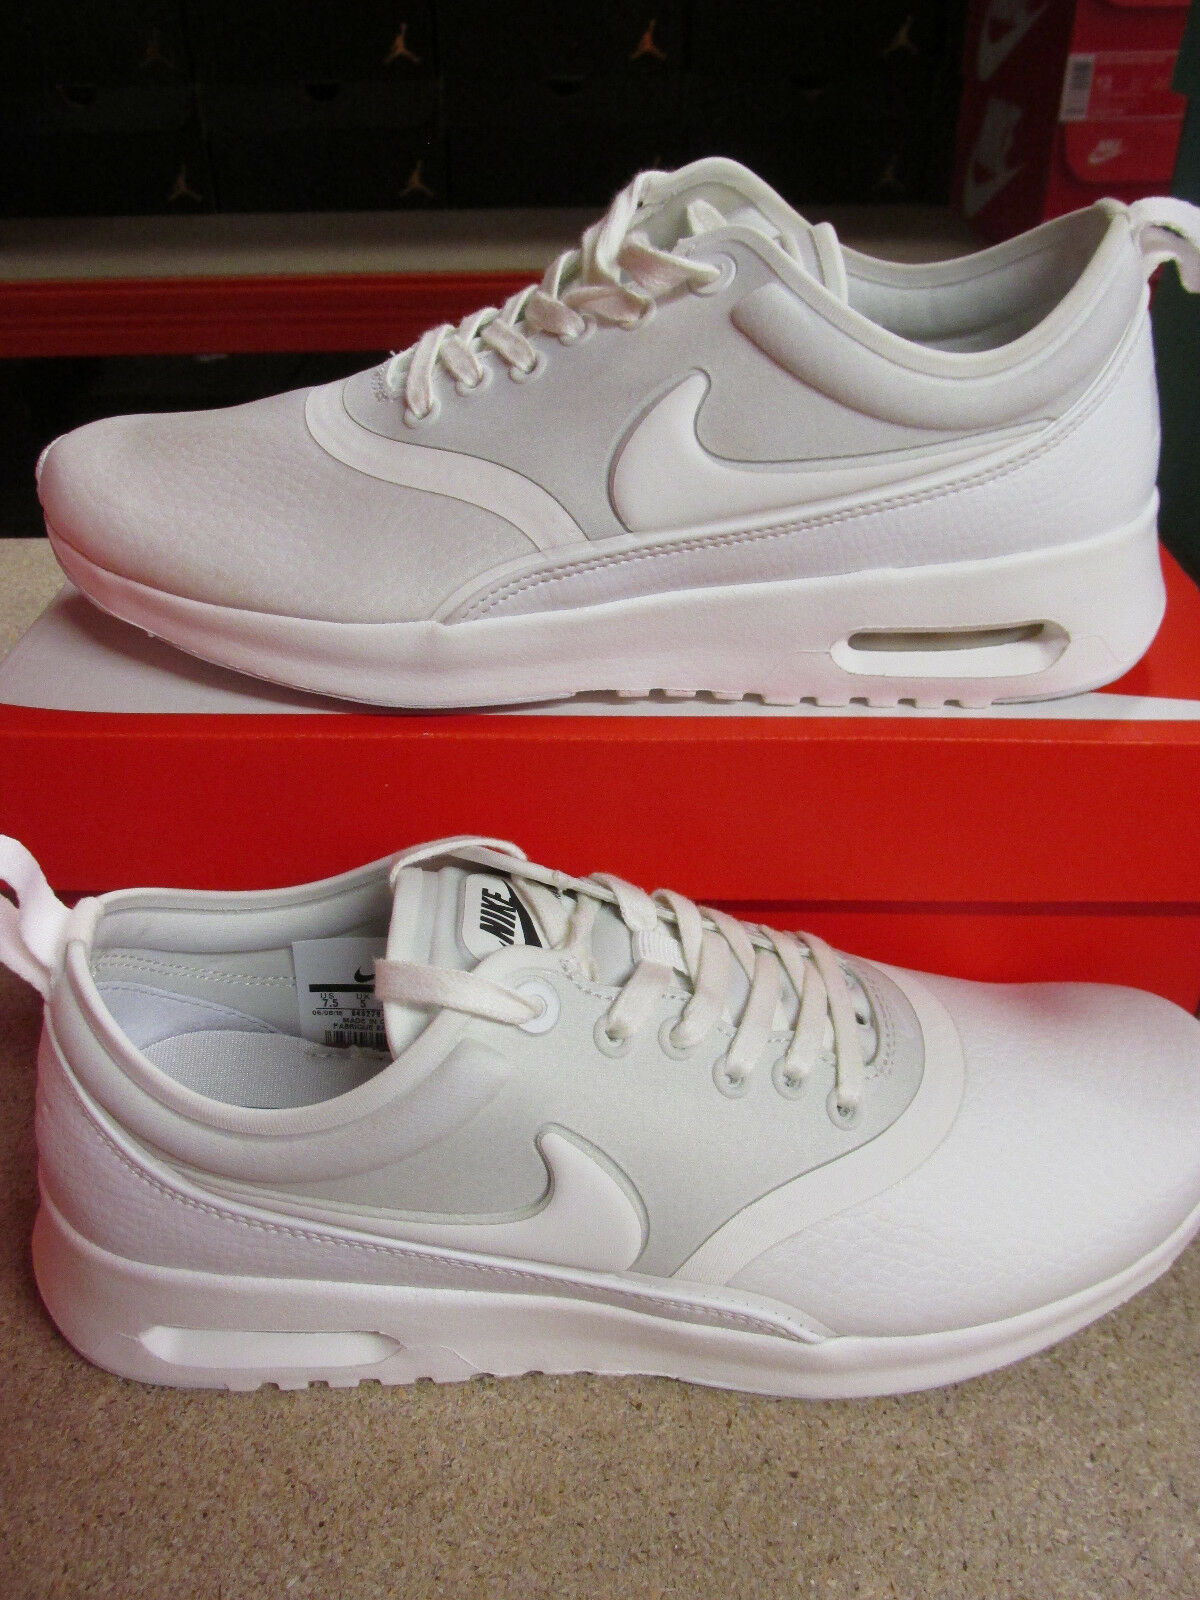 Nike Femme Air Max Thea Ultra Ultra Thea PRM fonctionnement Trainers 848279 100 Baskets chaussures 564372